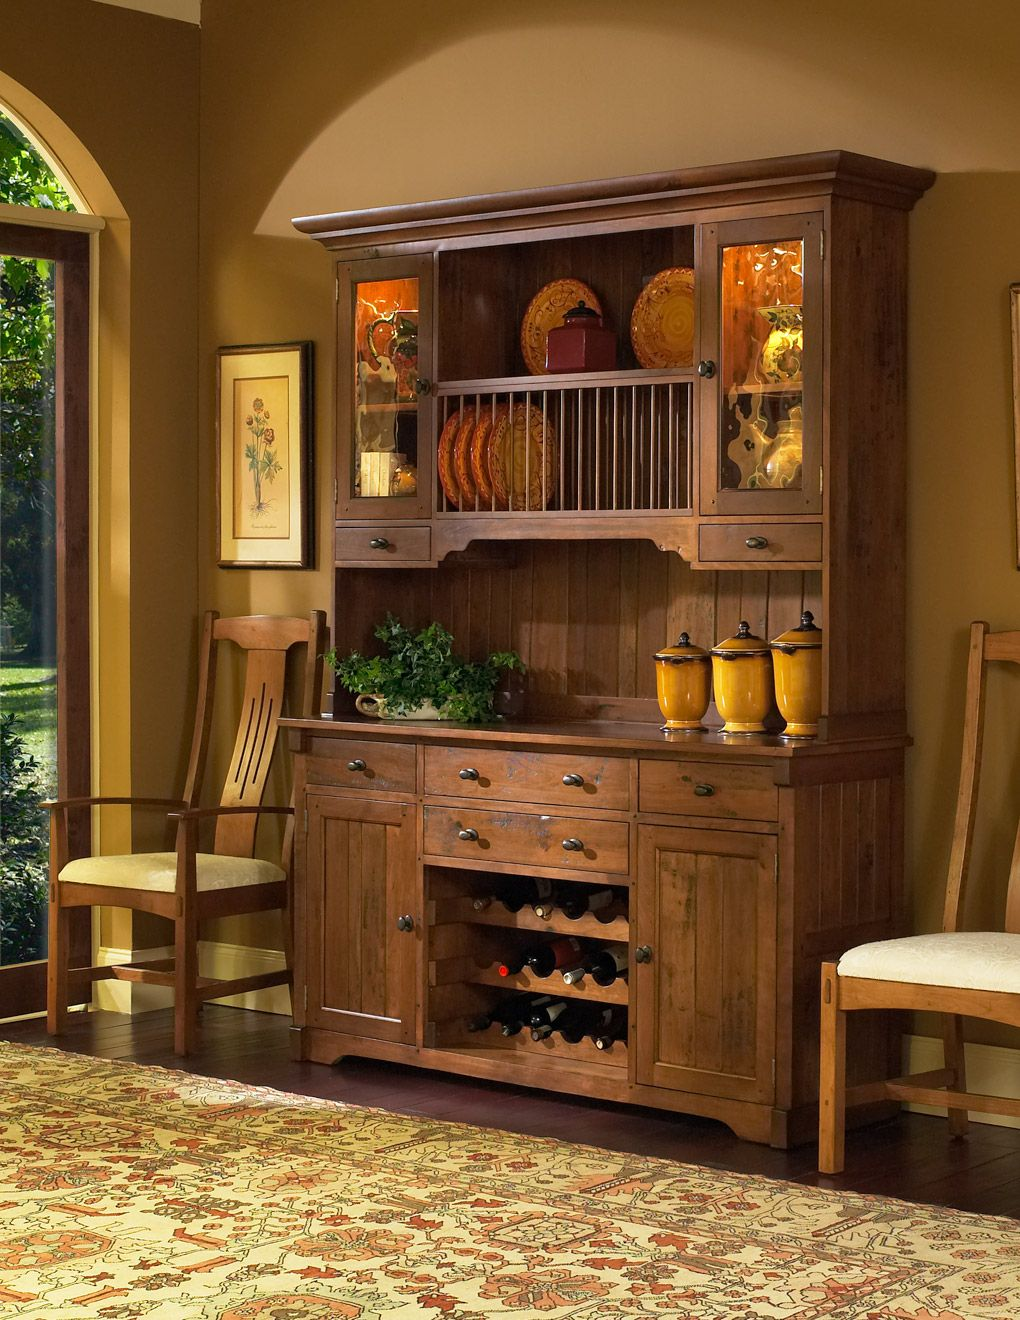 Strange English Country Buffet And Hutch For The Home Hutch Interior Design Ideas Clesiryabchikinfo